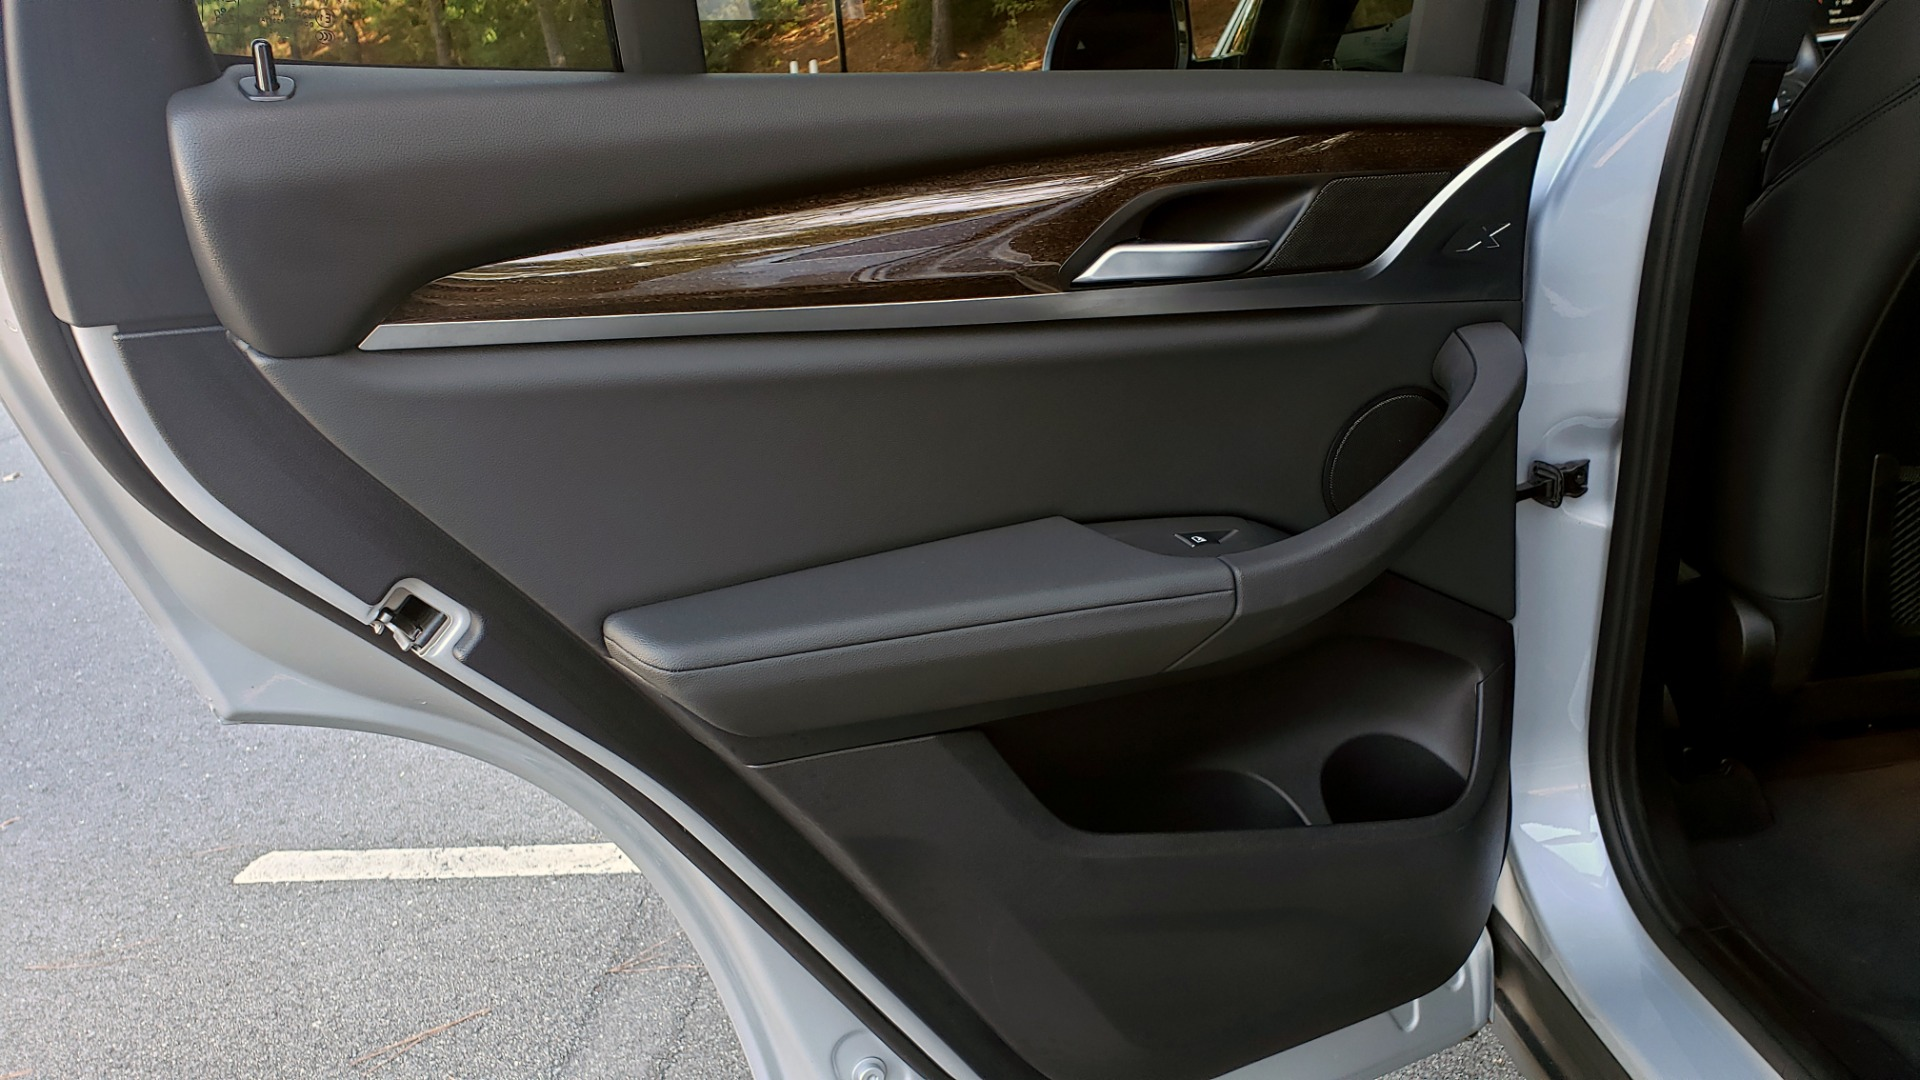 Used 2019 BMW X3 XDRIVE30I / DRVR ASST / PANO-ROOF / HTD STS / REARVIEW for sale $41,995 at Formula Imports in Charlotte NC 28227 63